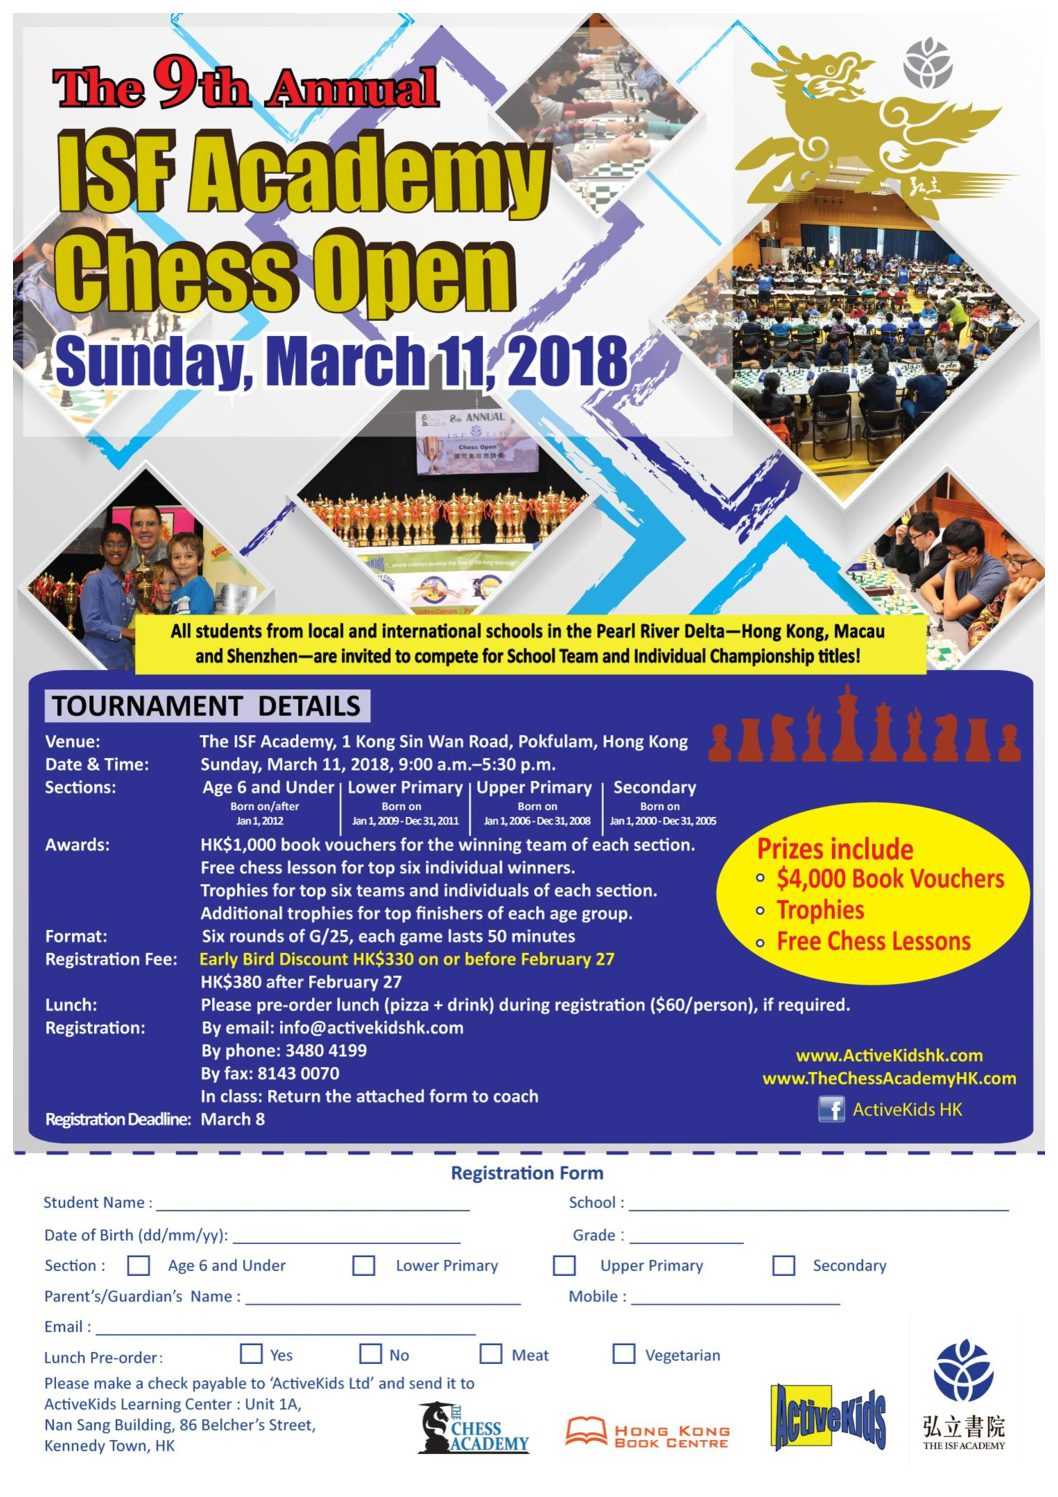 The 9th Annual ISF Academy Chess Open 2018